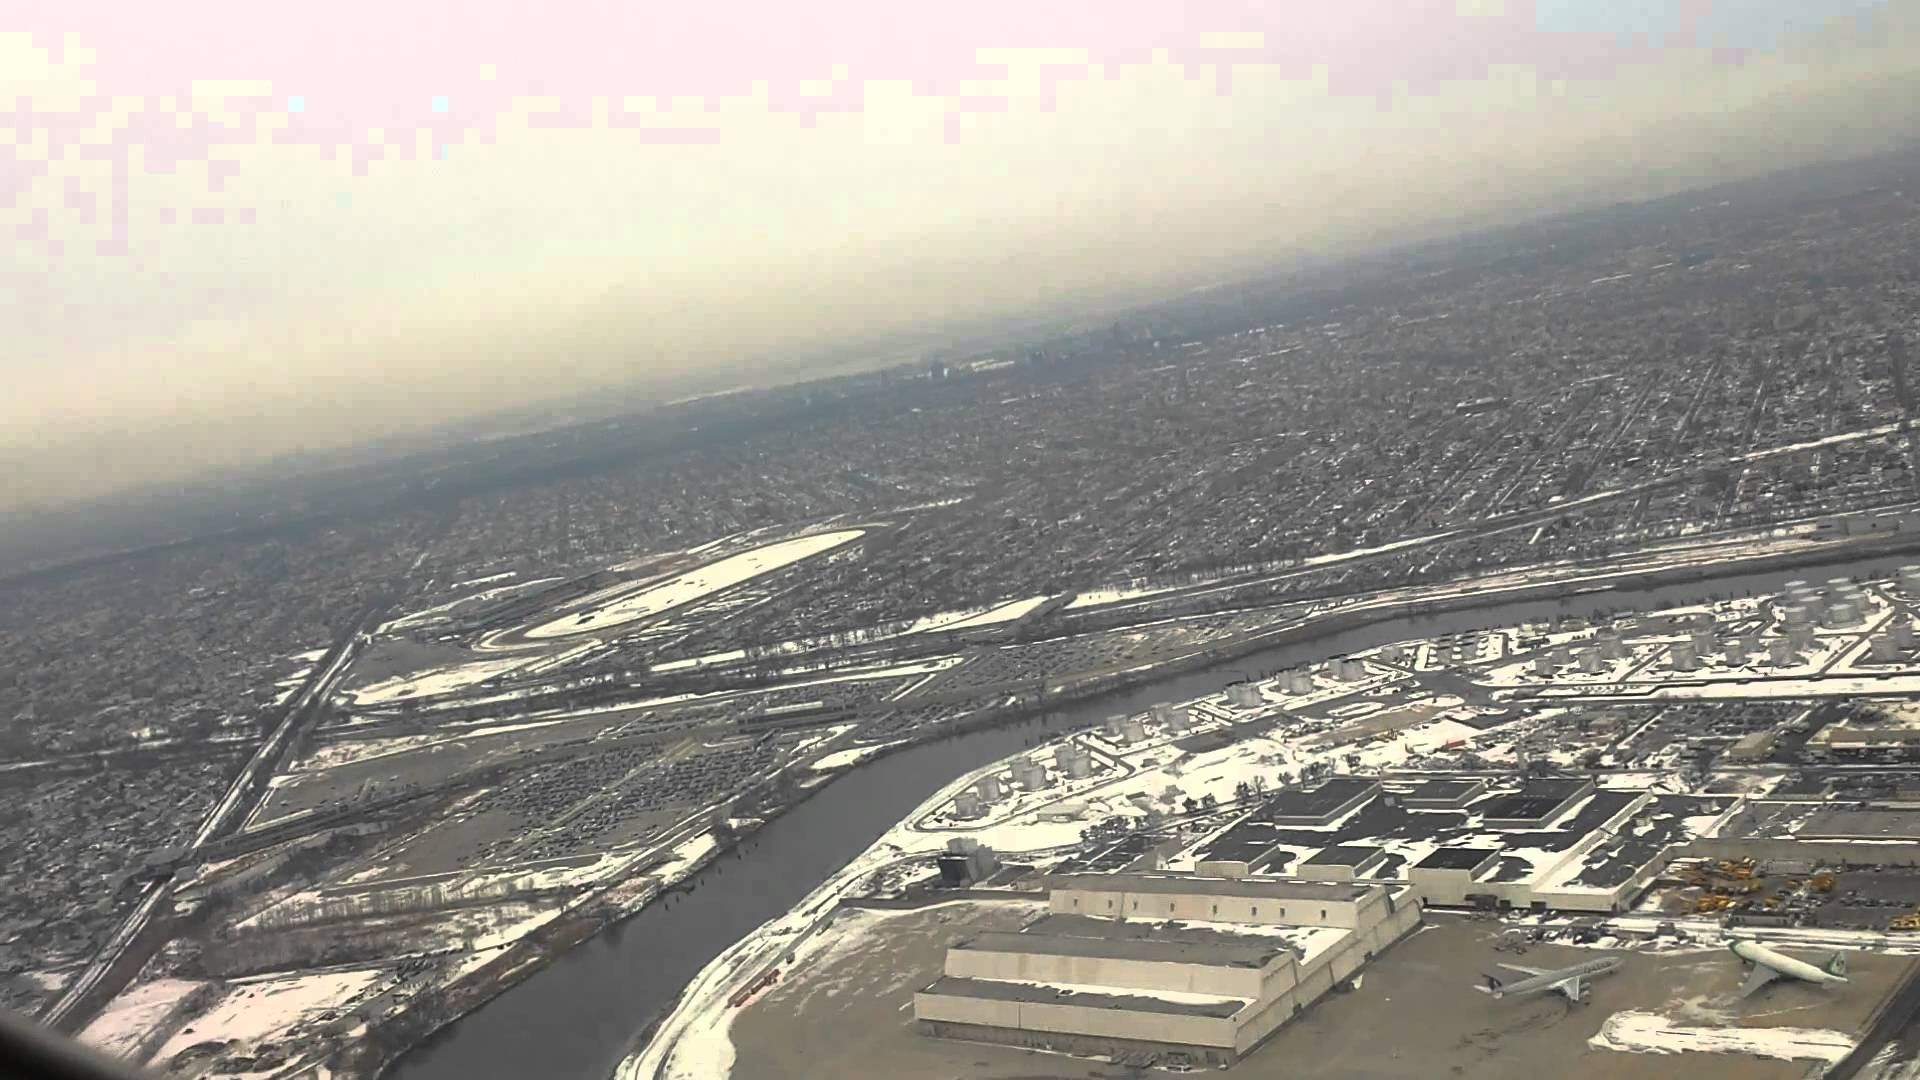 Delta Boeing 737-900 Take-off from JFK Int'l